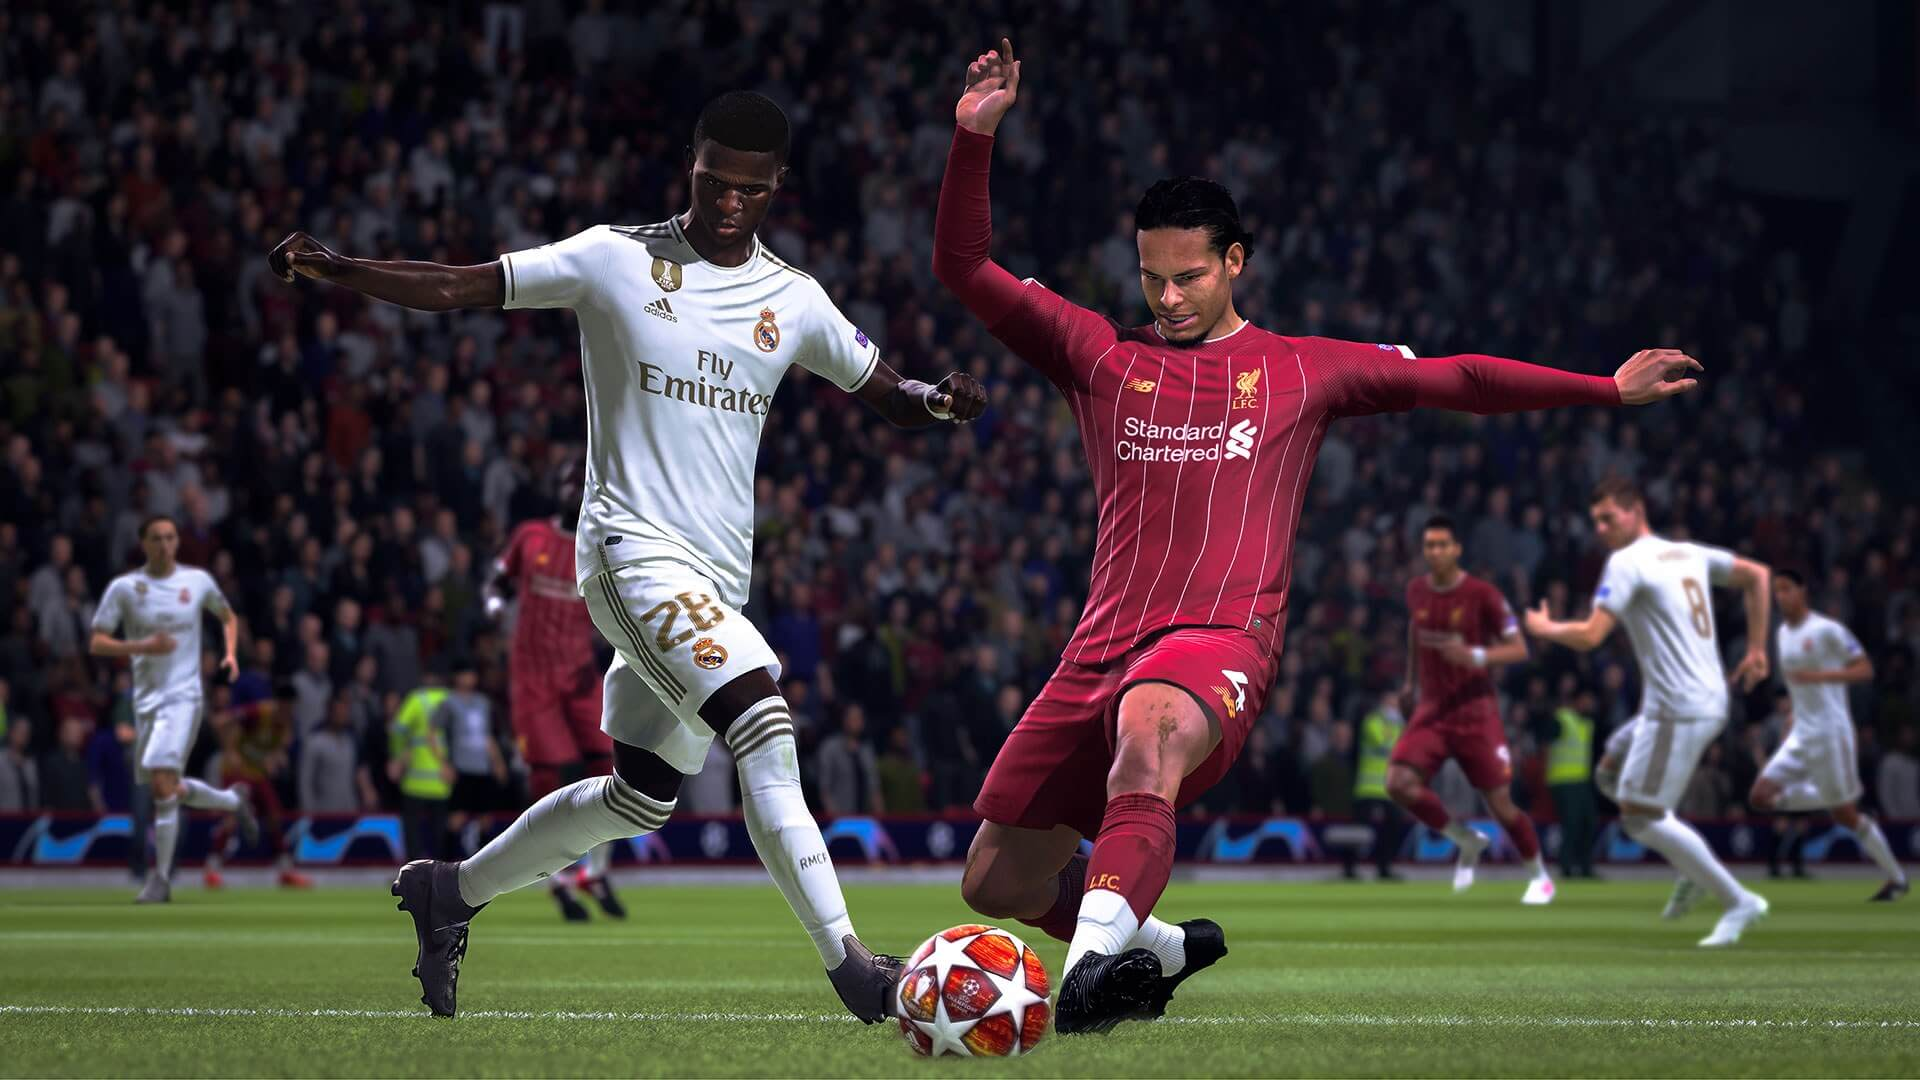 FIFA is under fire again for loot box gambling with two lawsuits filed in France